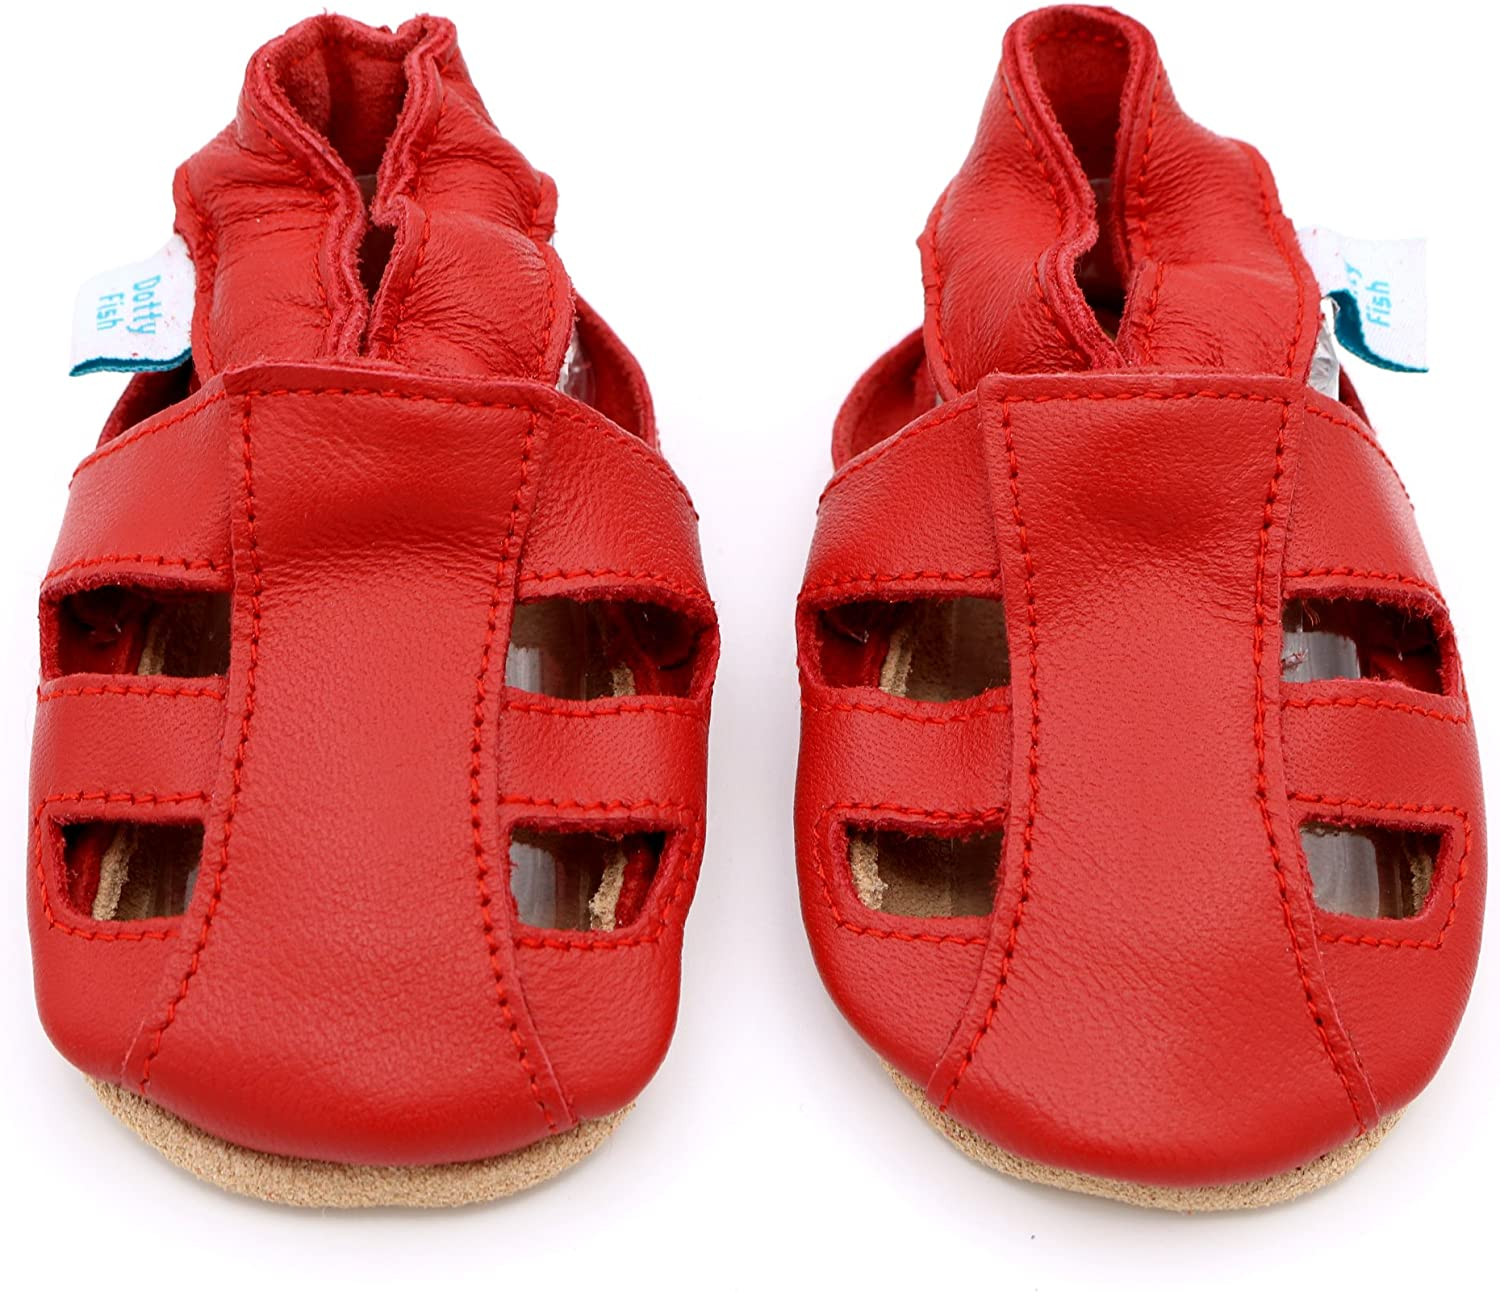 Dotty Fish Soft Leather Baby Shoes with Suede Soles Toddler Sandals Non-Slip 0-6 Months to 3-4 Years